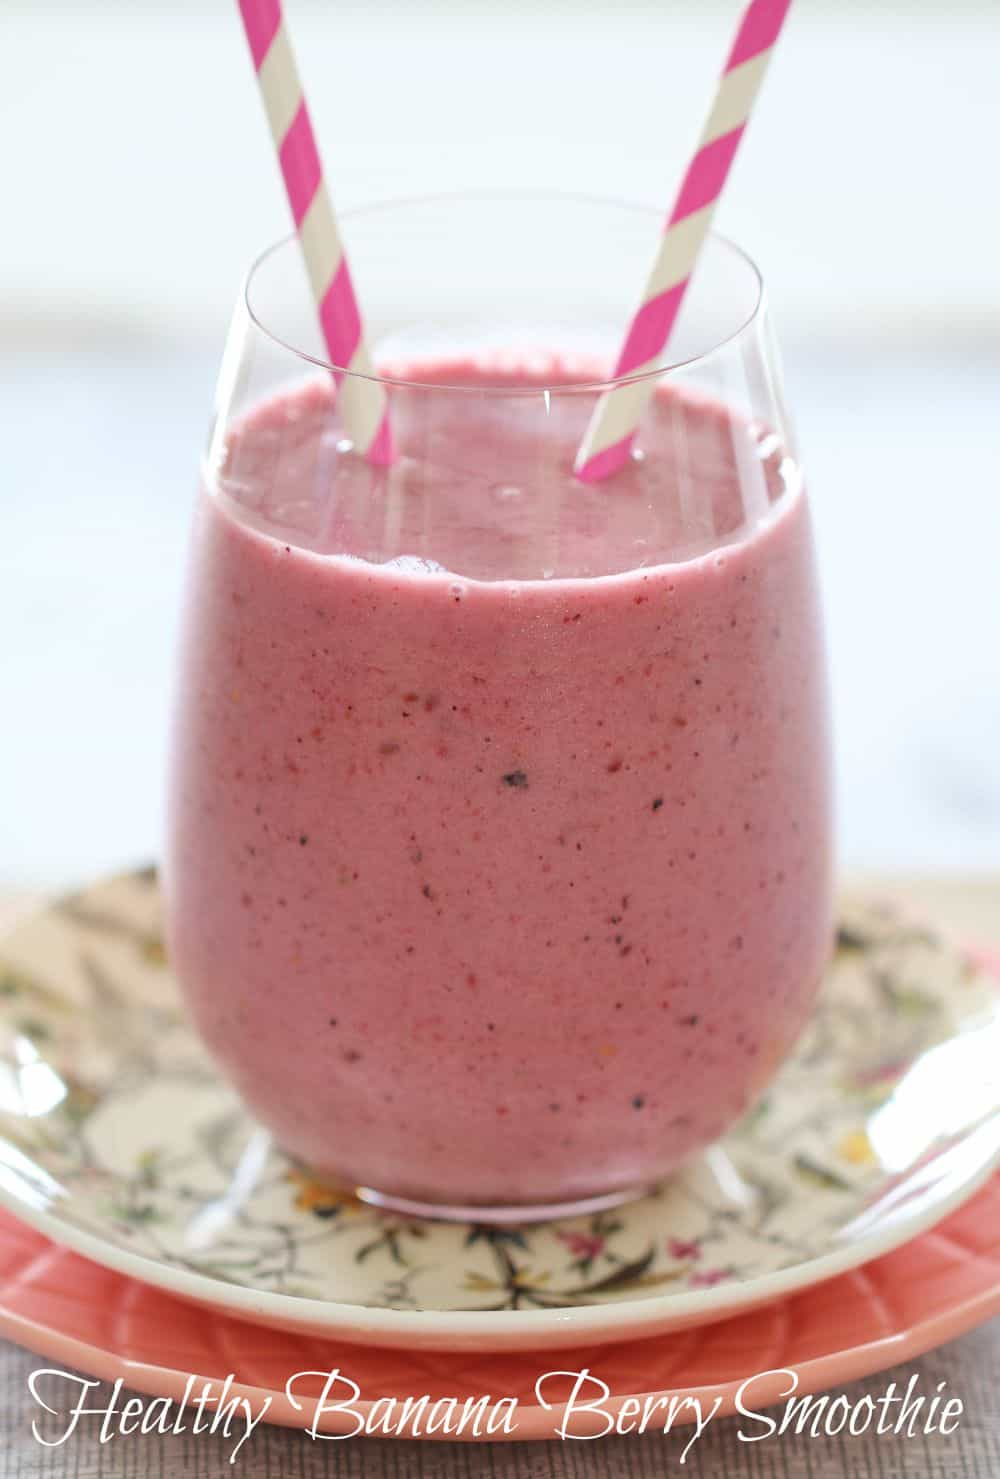 Healthy Banana Berry Smoothie